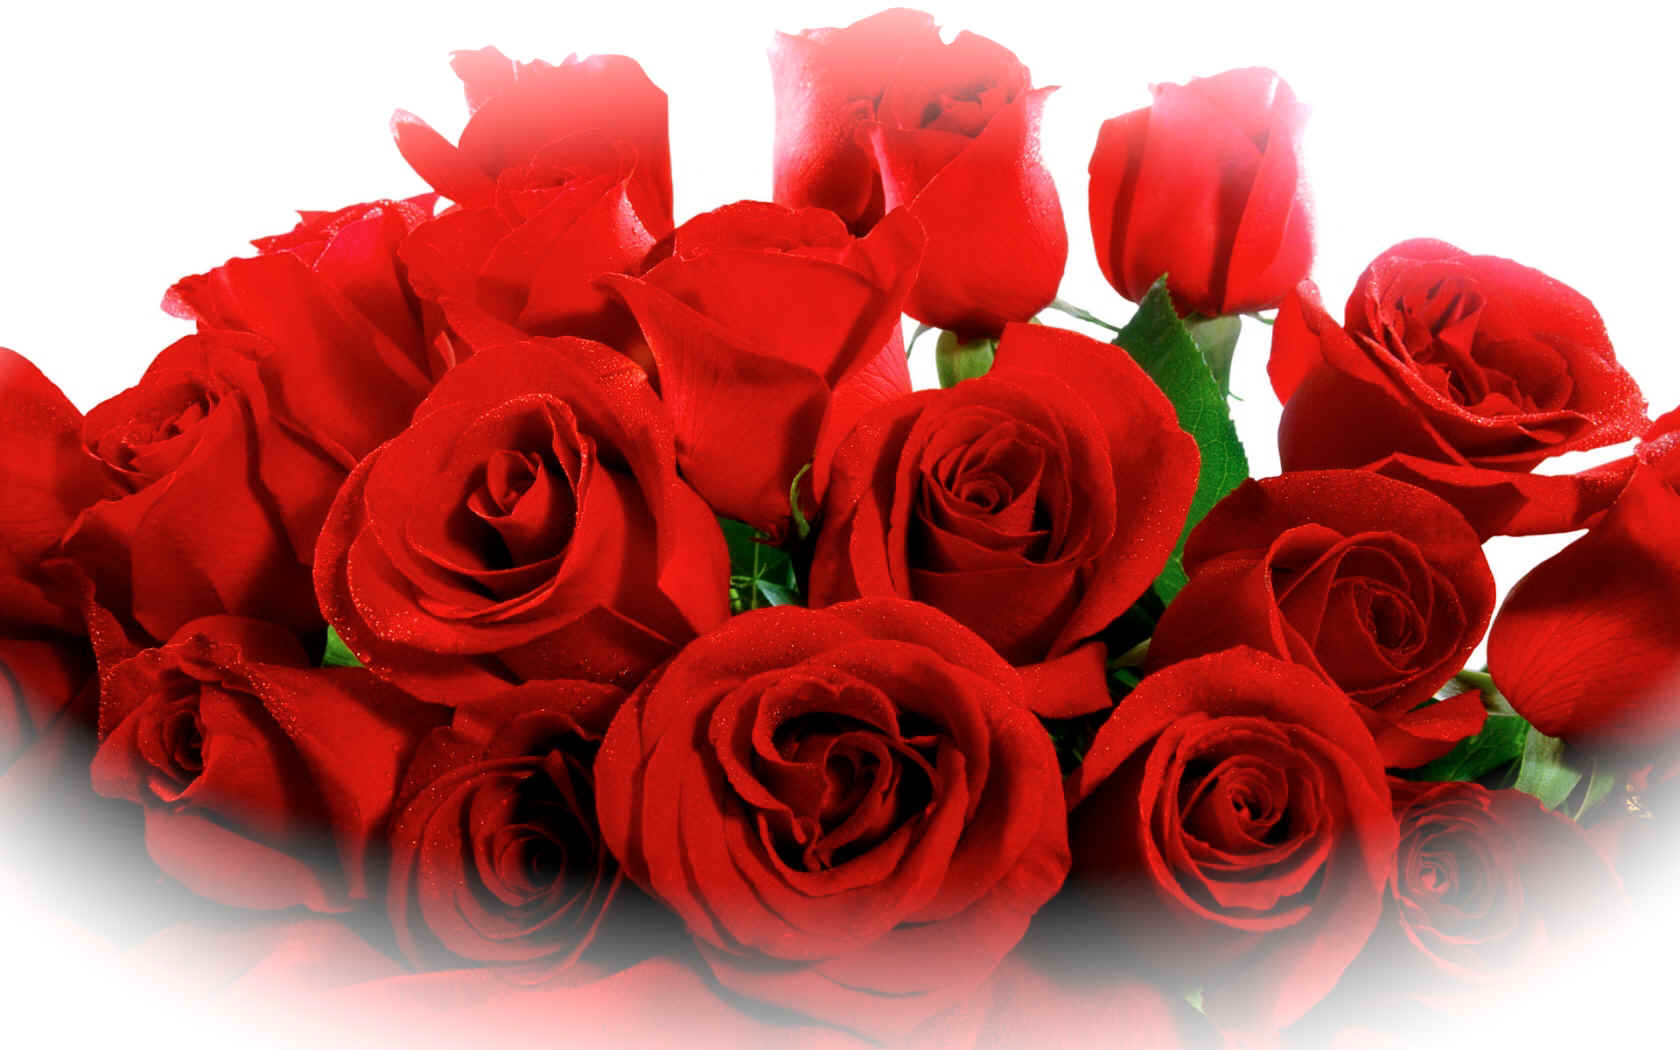 lovely_red_roses-.jpg (534576 bytes)